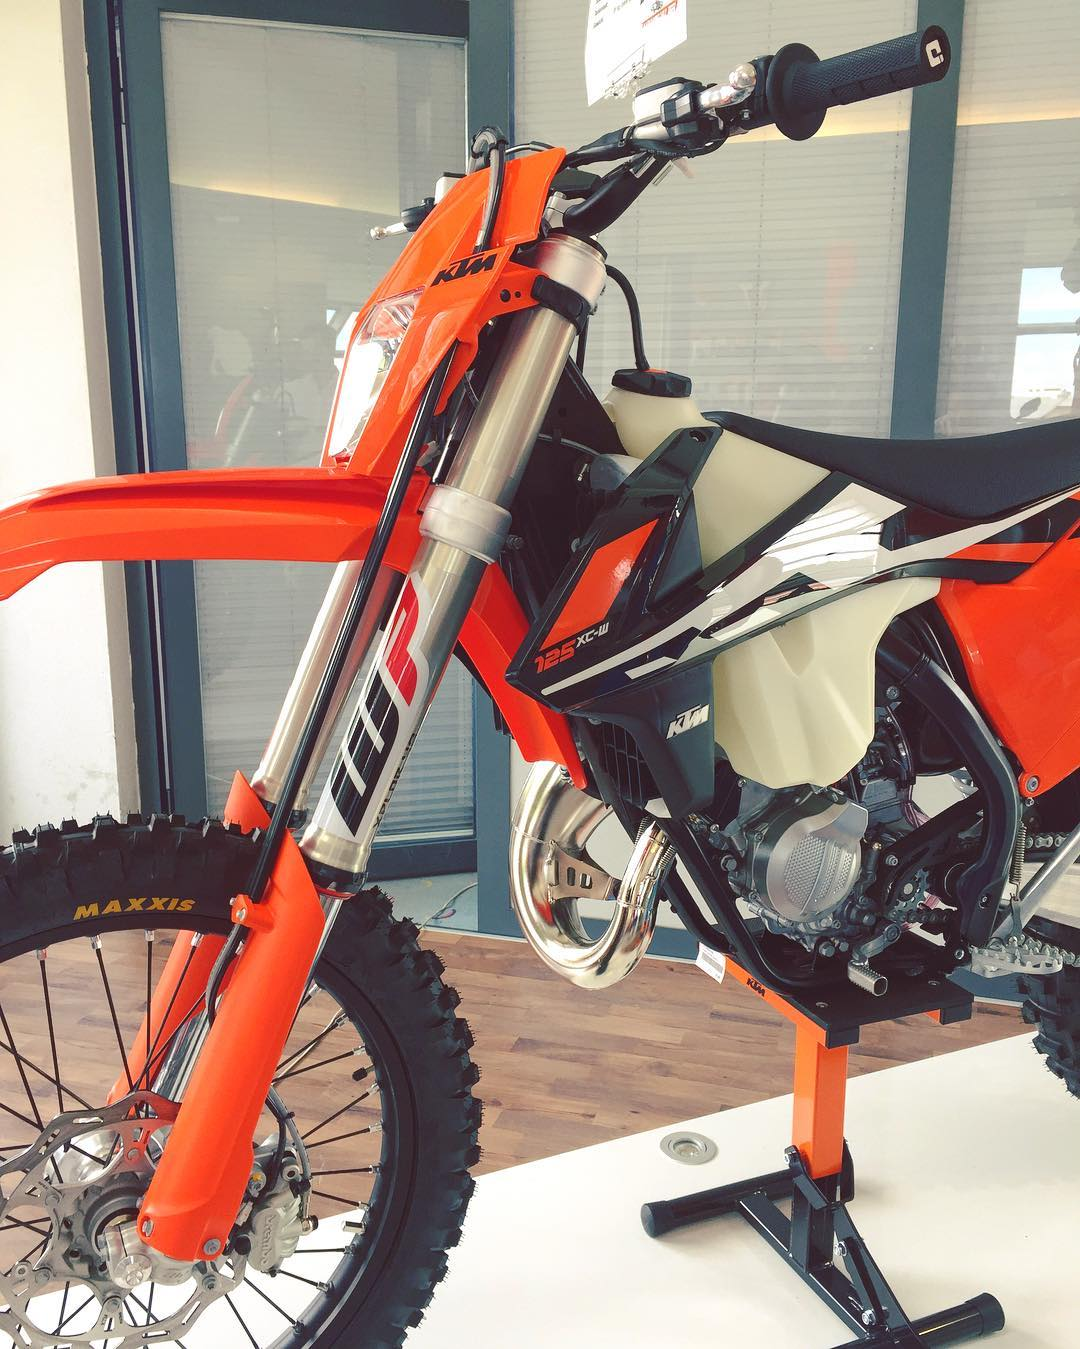 Due to Euro homologation issues, The #KTM #125exc is no more but it has been replaced with the similar although no longer road legal #125xcw as seen here @ktmsalzburg #enduro